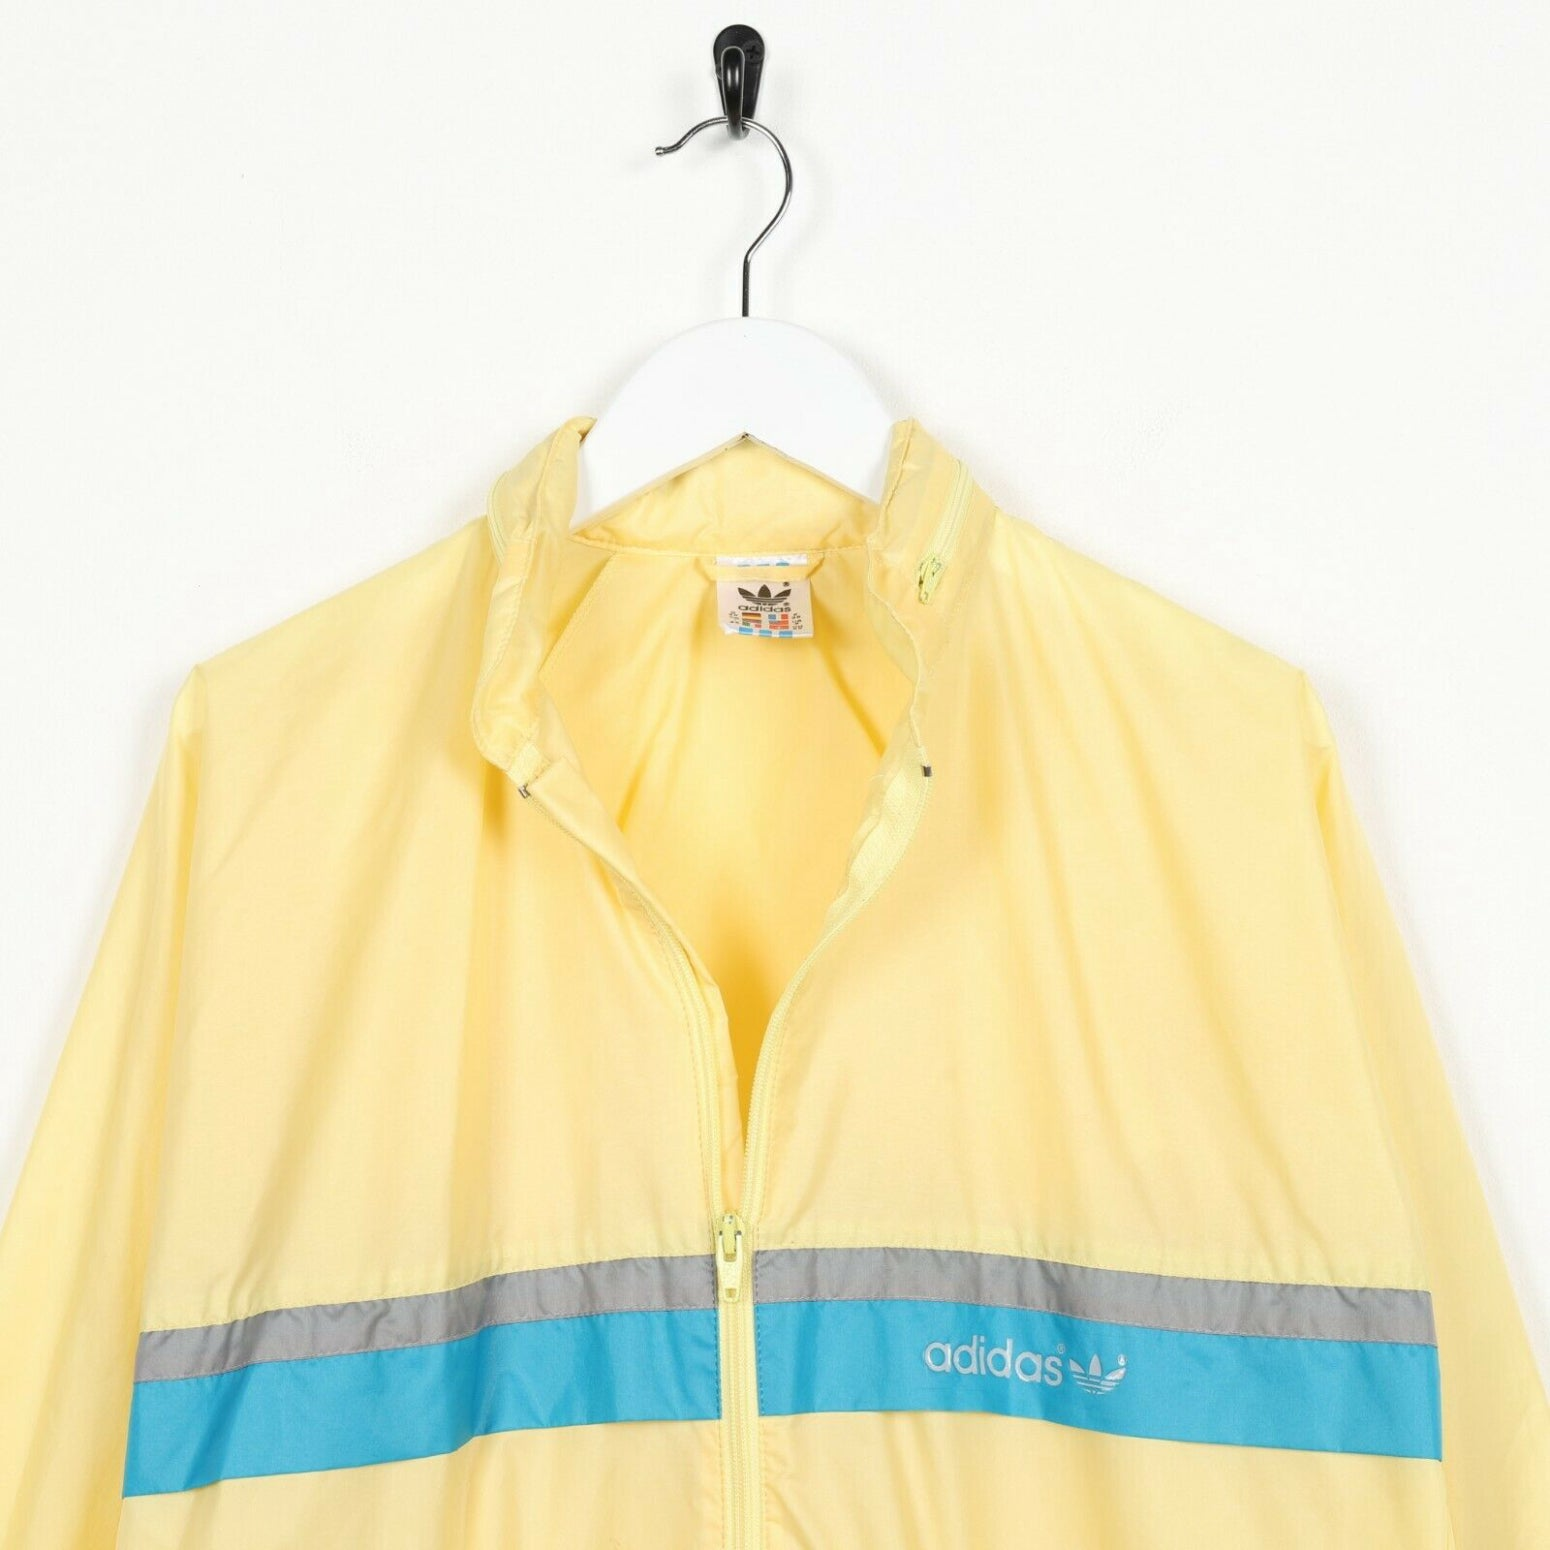 Vintage Women's 80s ADIDAS Small Logo Lightweight Anorak Jacket Yellow | UK 10